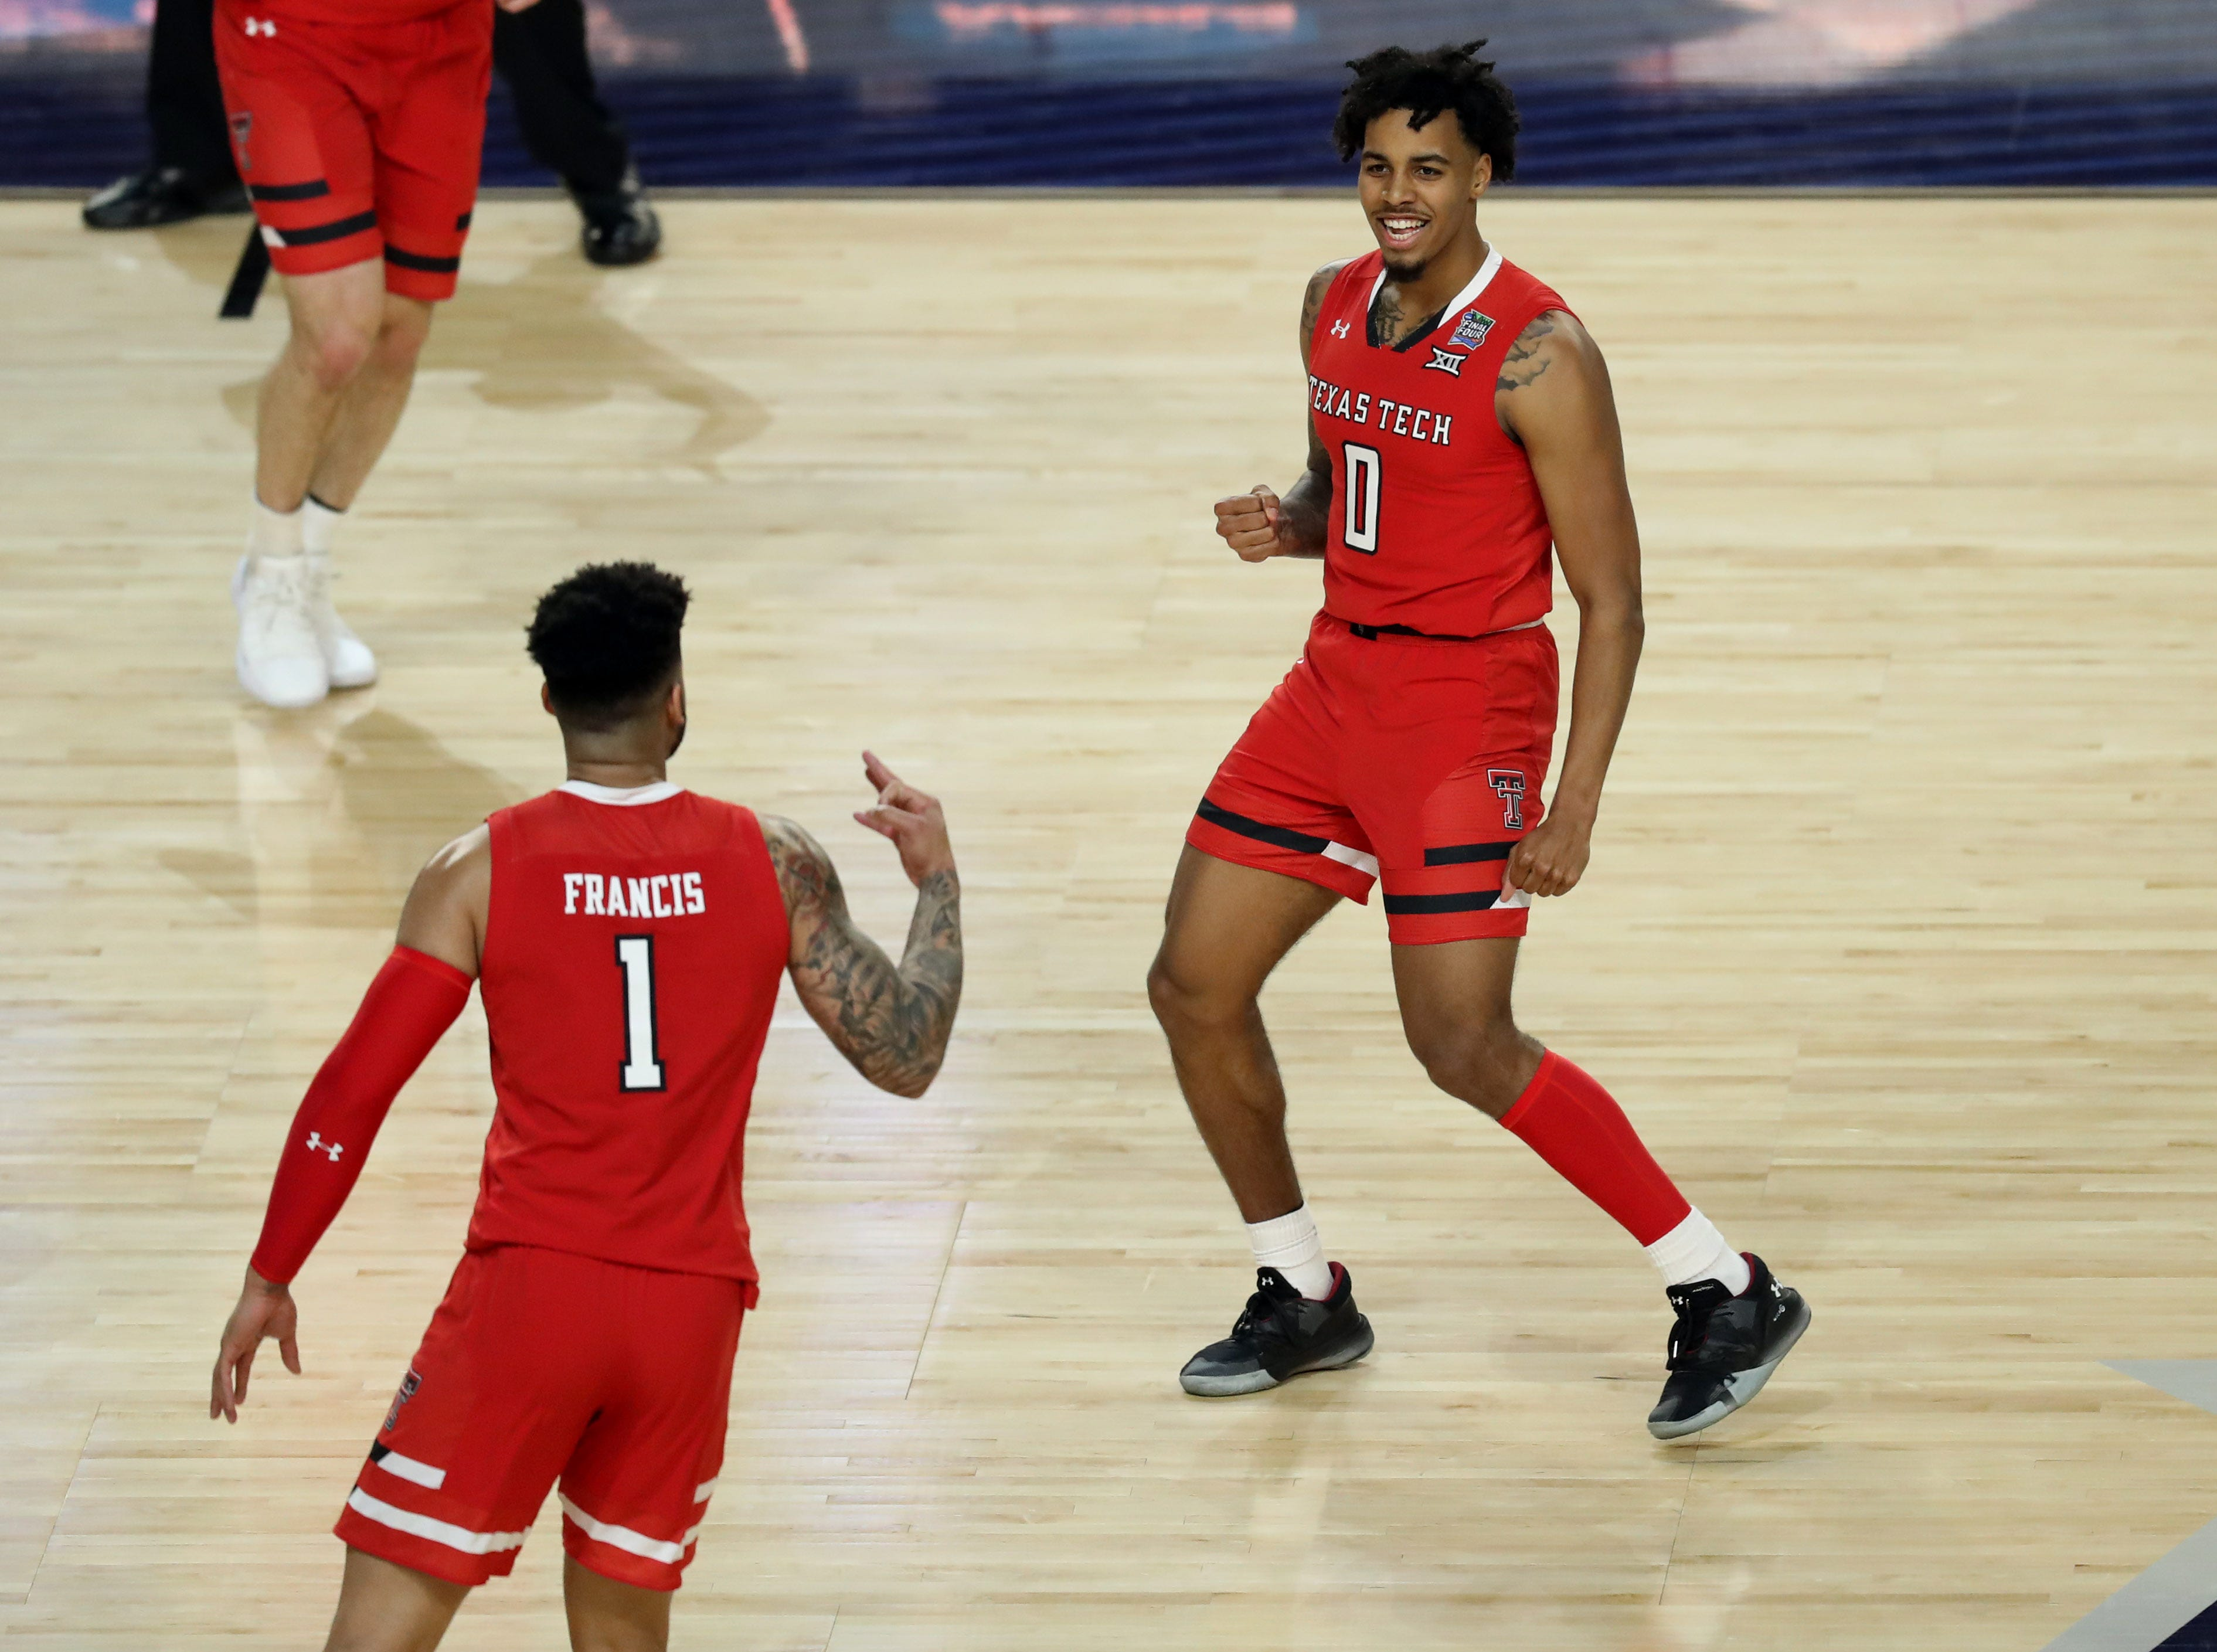 Apr 8, 2019; Minneapolis, MN, USA; Texas Tech Red Raiders guard Brandone Francis (1) and guard Kyler Edwards (0) celebrate during the first half against the Virginia Cavaliers in the championship game of the 2019 men's Final Four at US Bank Stadium. Mandatory Credit: Brace Hemmelgarn-USA TODAY Sports